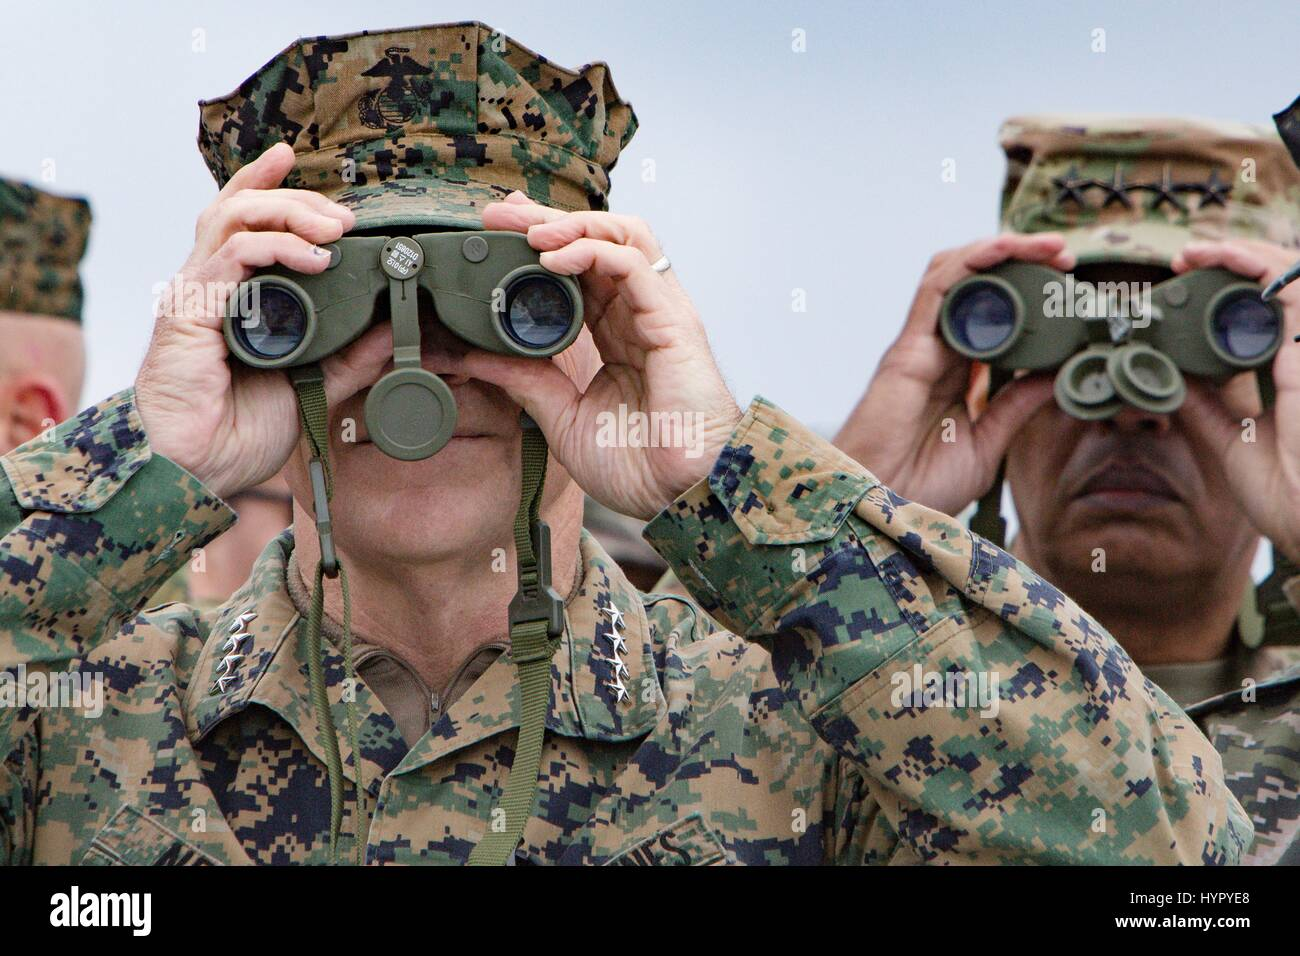 U.S. Marine Corps Commandant Gen. Robert Neller, left, and  Army Gen. Vincent Brooks, U.S. and U.N. Forces Korea commander, watches an amphibious assault demonstration with binoculars during at the annual PALS 2017 exercises April 2, 2017 in Pohang, South Korea. PALS is held annually to help strengthen relationships between Indo-Asia-Pacific region Marine and Naval forces. Stock Photo